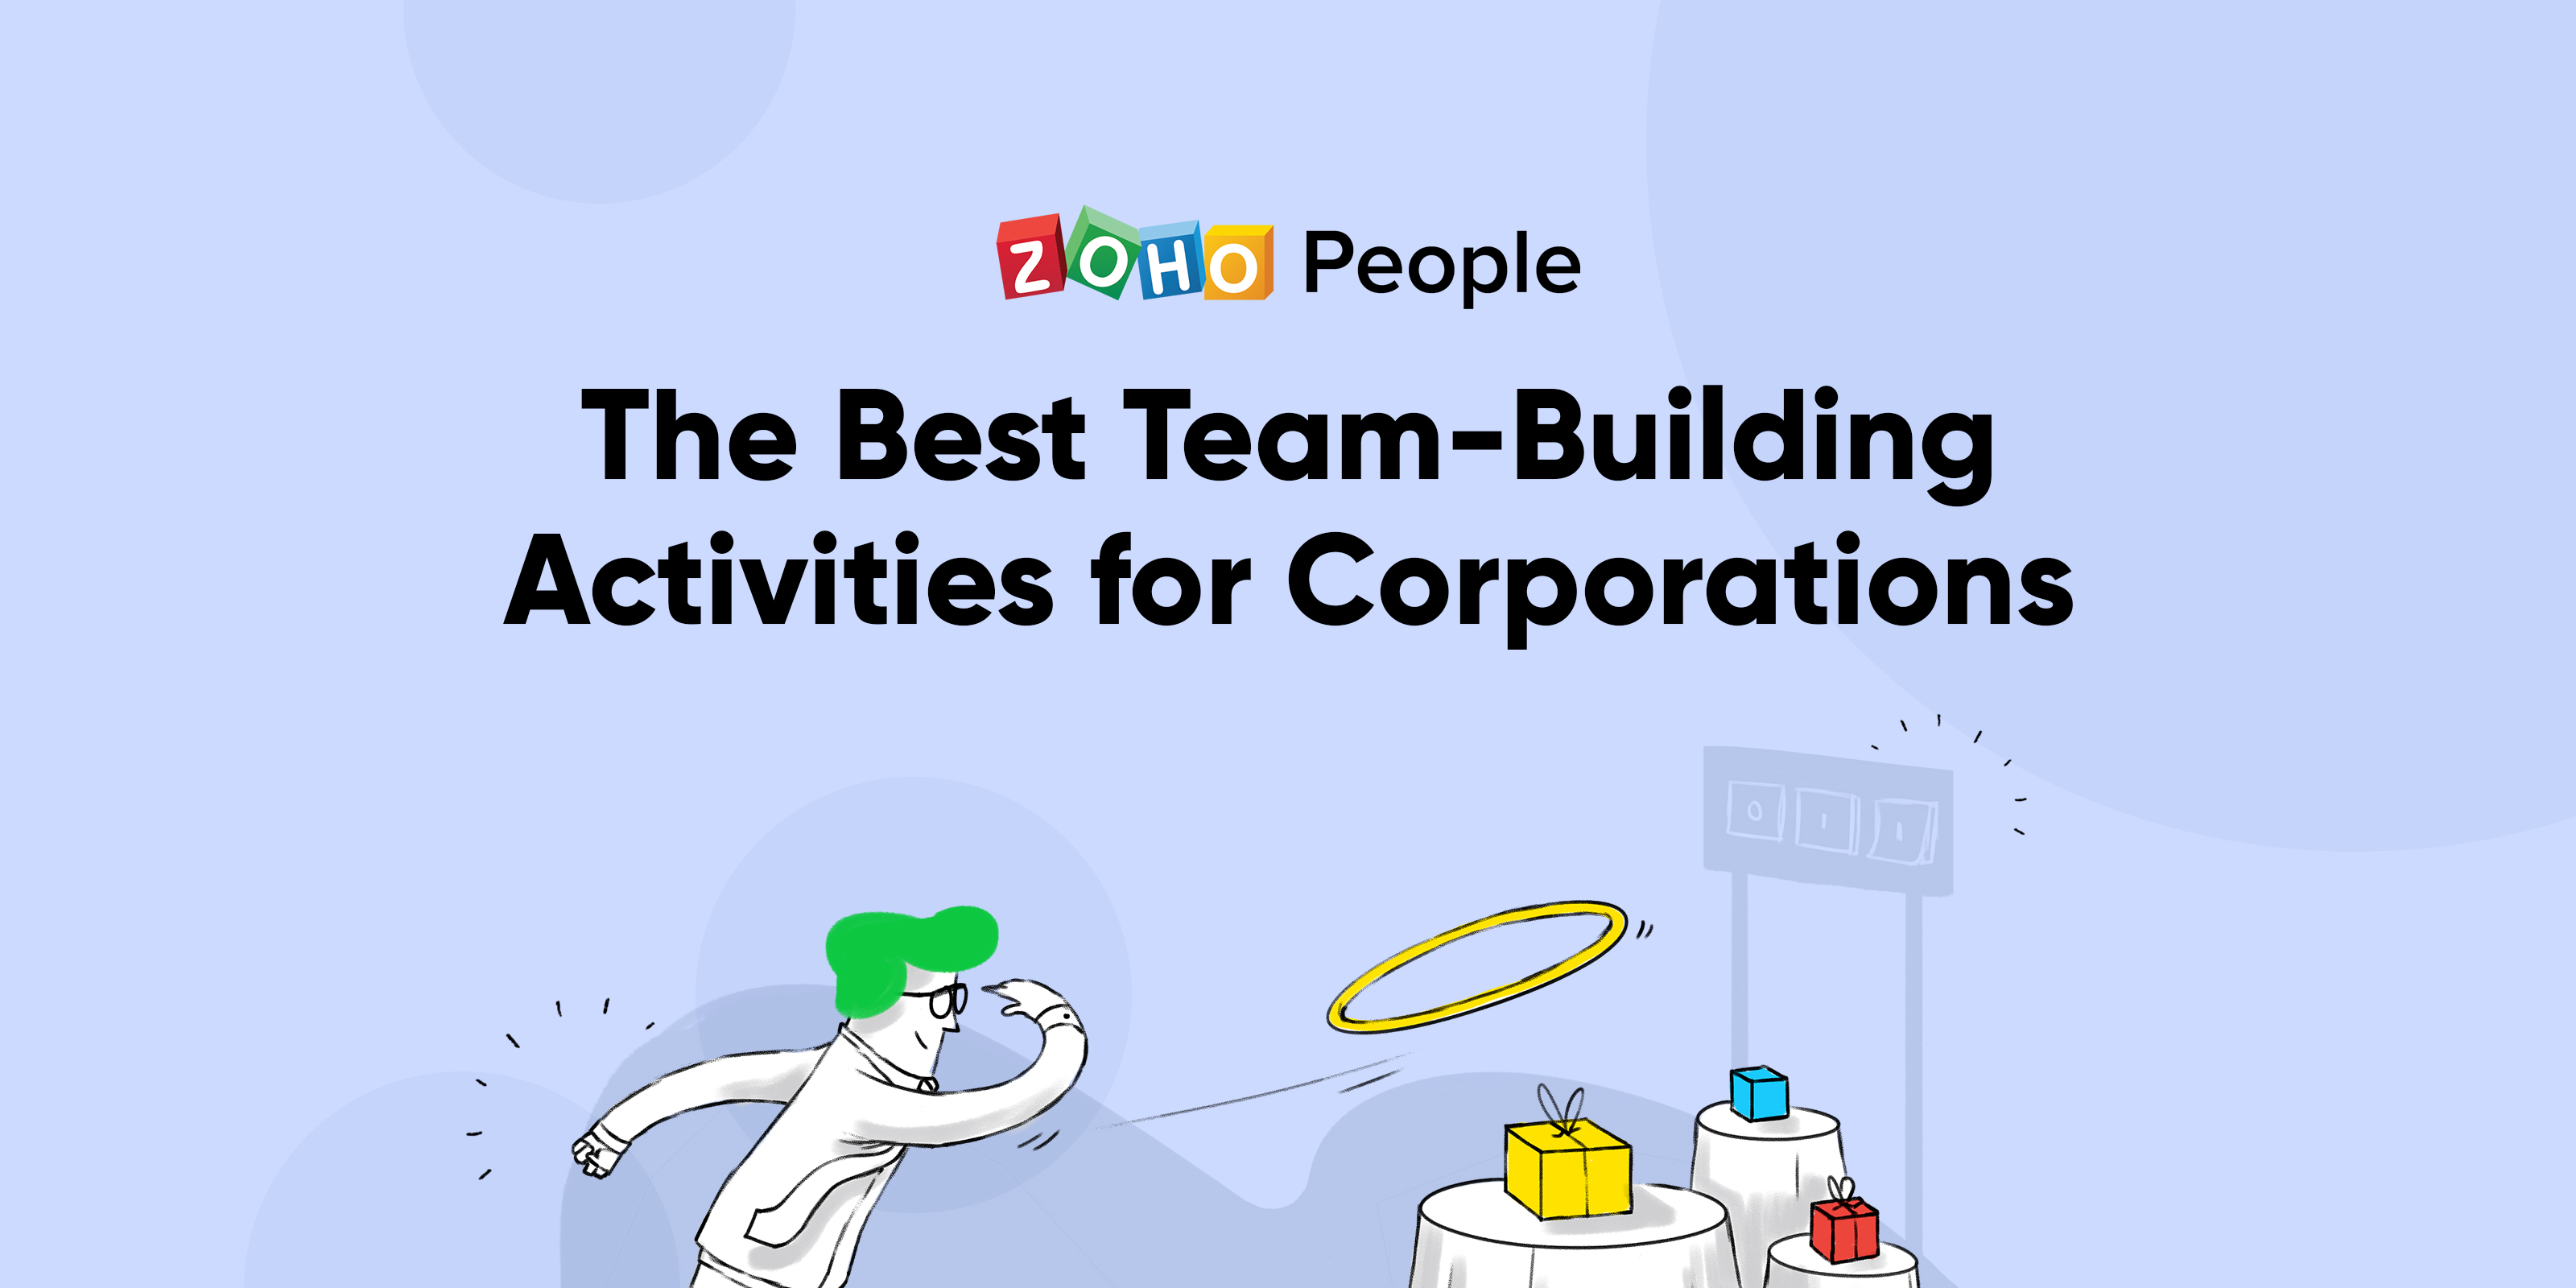 15 team-building activities for corporations.